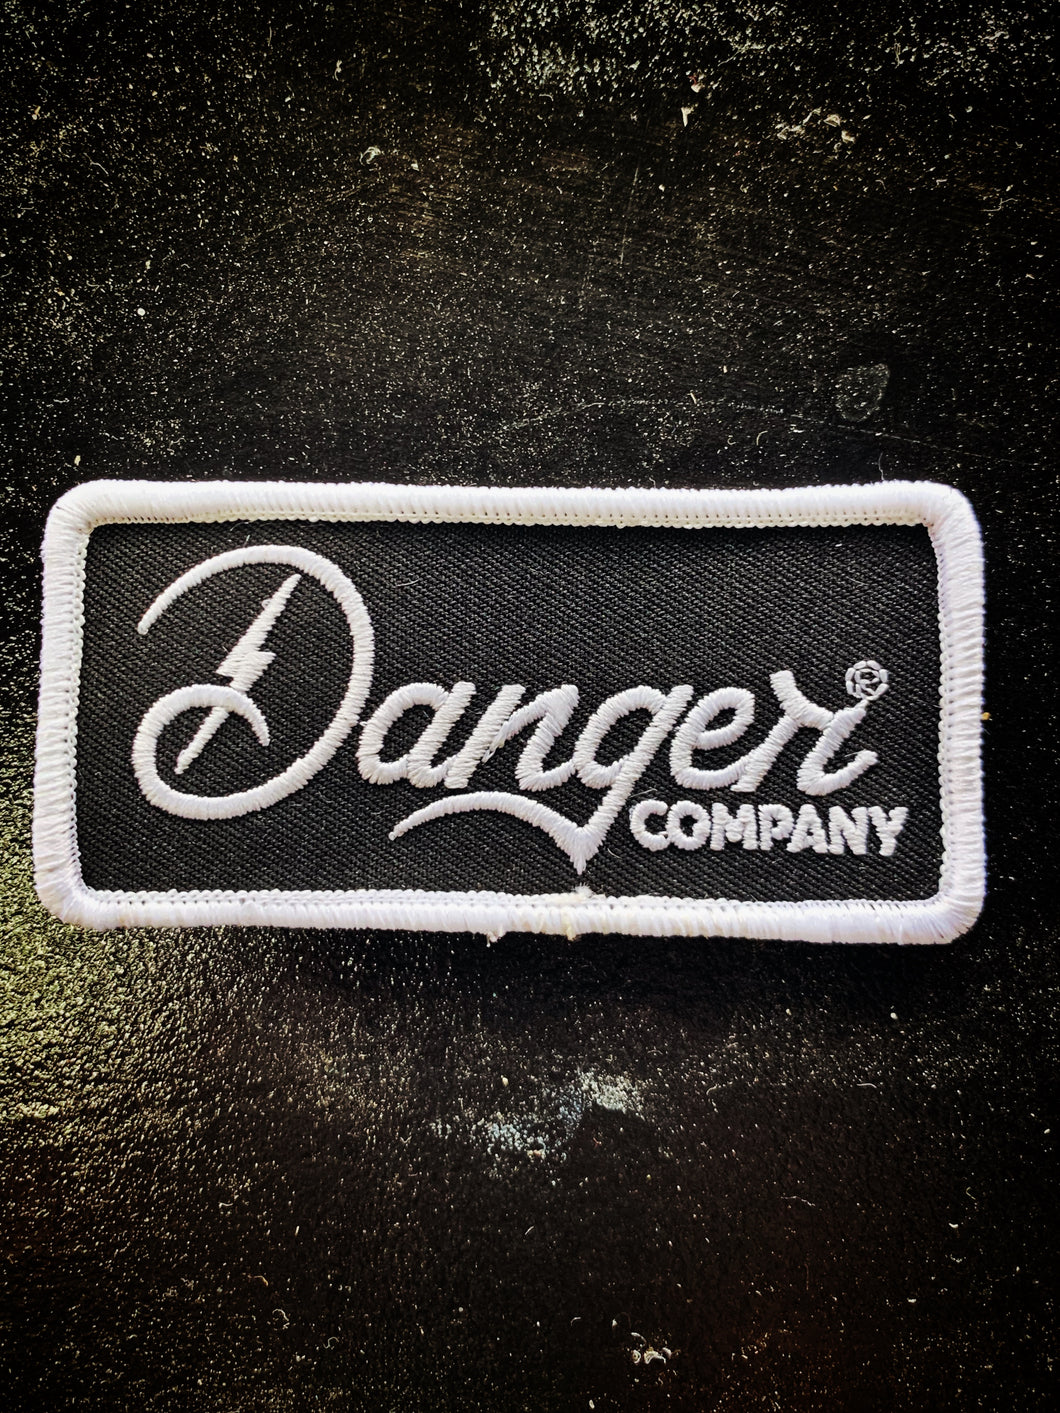 Danger Company Patch